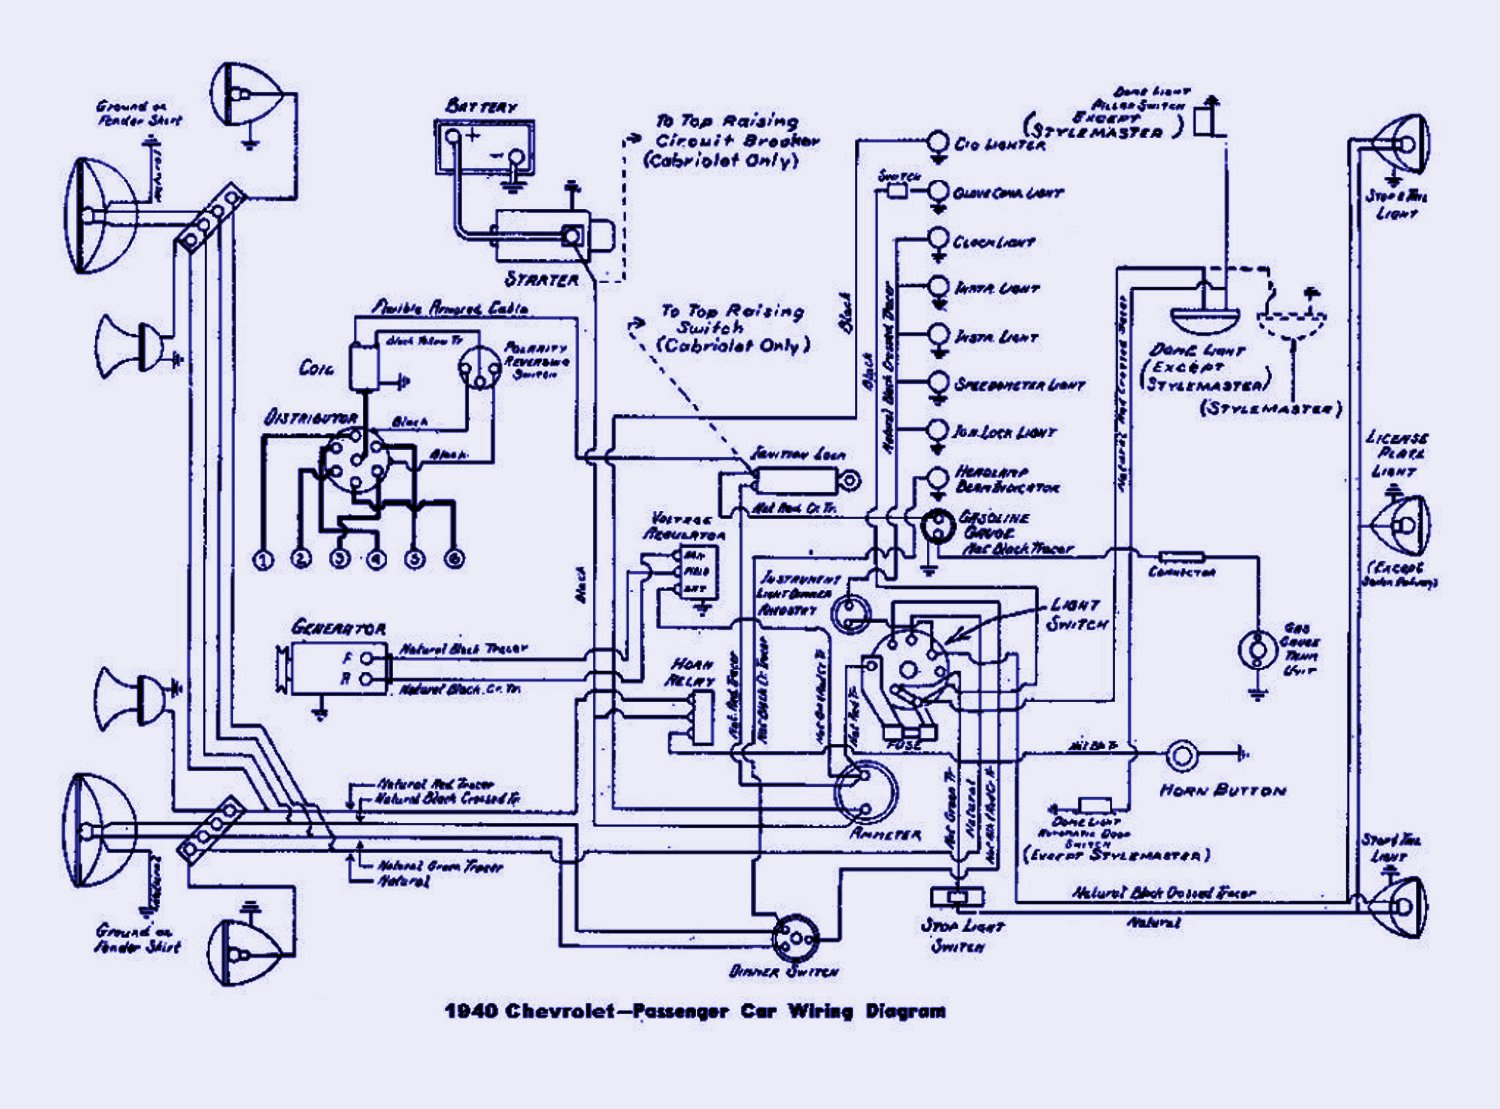 Humvee Starter Wiring Diagram Trusted Diagrams Hmmwv Schematic M1008 Complete Hummer M12 Basic Ford Solenoid